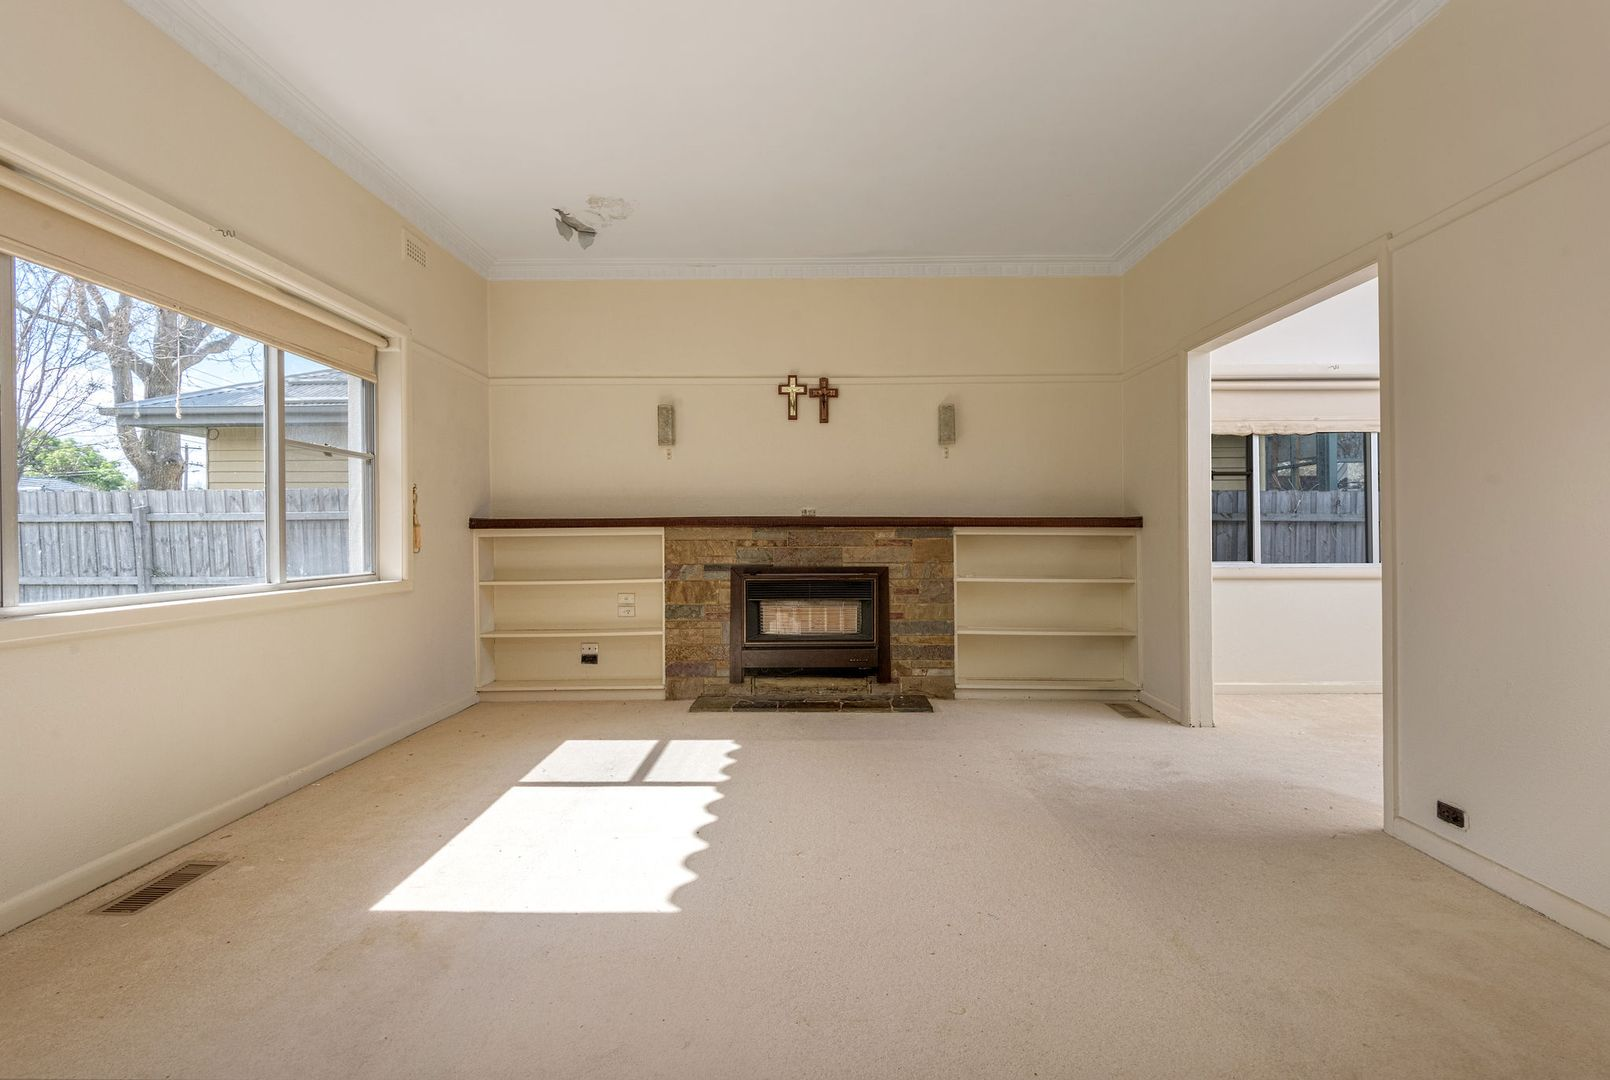 1/22 Fifth Street, Parkdale VIC 3195, Image 2